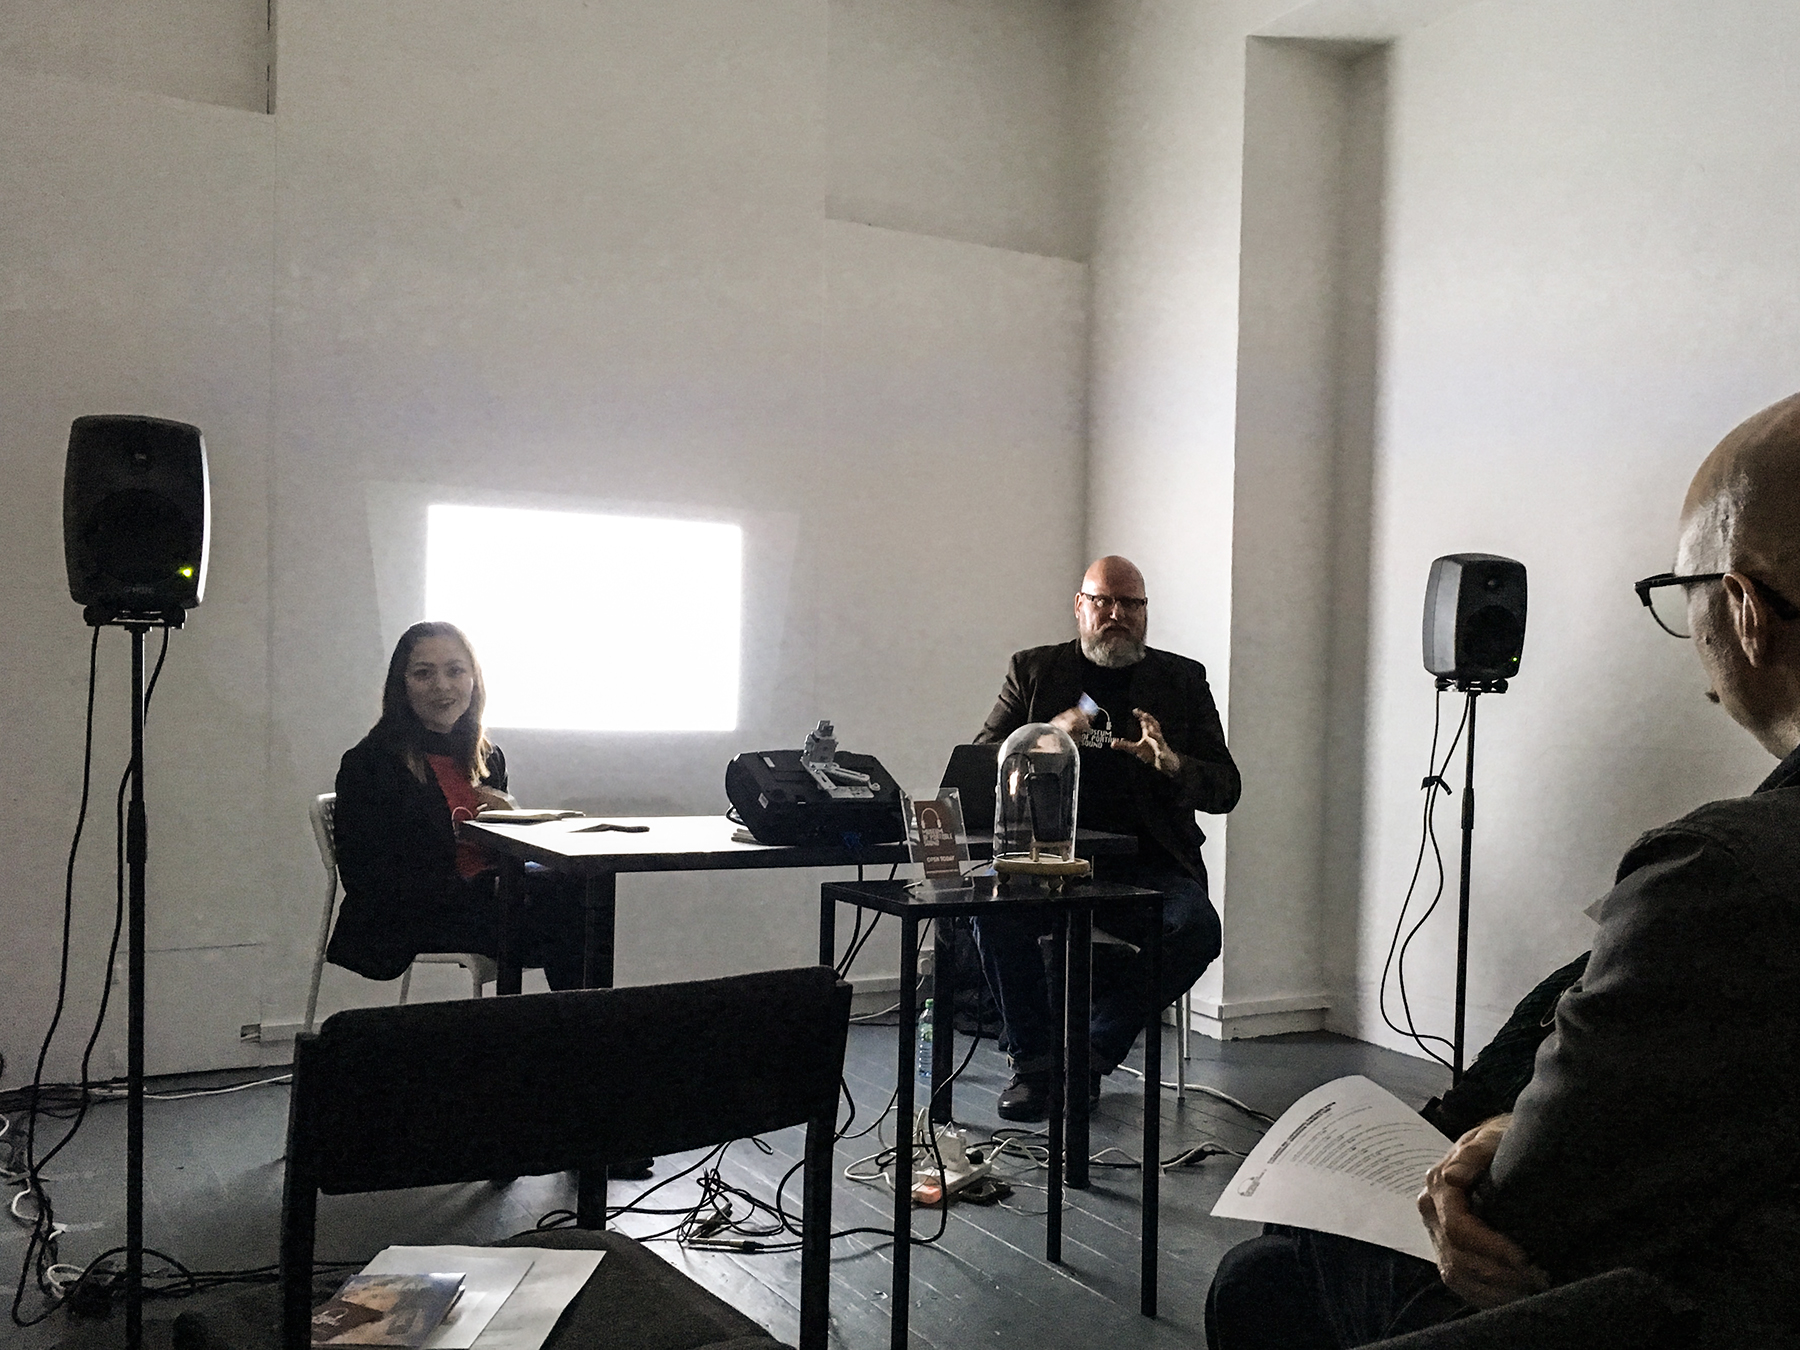 Curator Cristina Sousa Martínez (left) & Director John Kannenberg take questions from the audience at the Museum's Grand Re-Opening event and private view at Chalton Gallery, King's Cross, Nov. 2016.